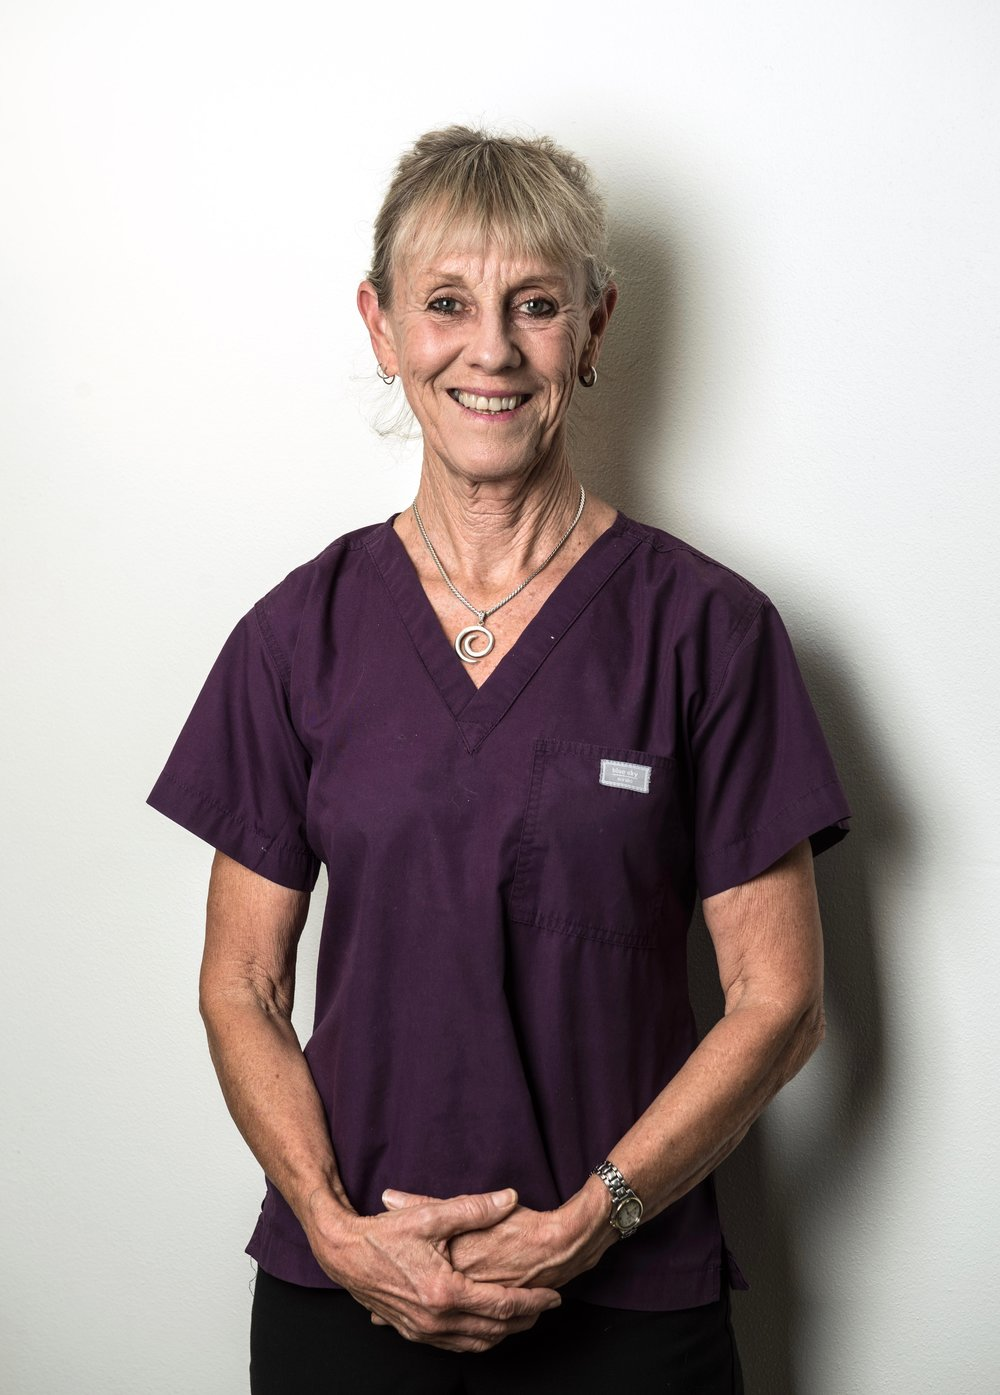 Orthodontic Assistant - Karen   Karen has lived in the Eastern Suburbs all her life and has worked in many varied jobs but always had a desire to work in the dental industry. She joined the Practice as a chair side assistant 10 years ago. Karen now lives in Bellevue Hill with her cat Peppa. She keeps fit by going to the gym with a keen interest in yoga.  She loves reading, walking cooking and relaxing on the beach. She also enjoys riding her VESPA!!